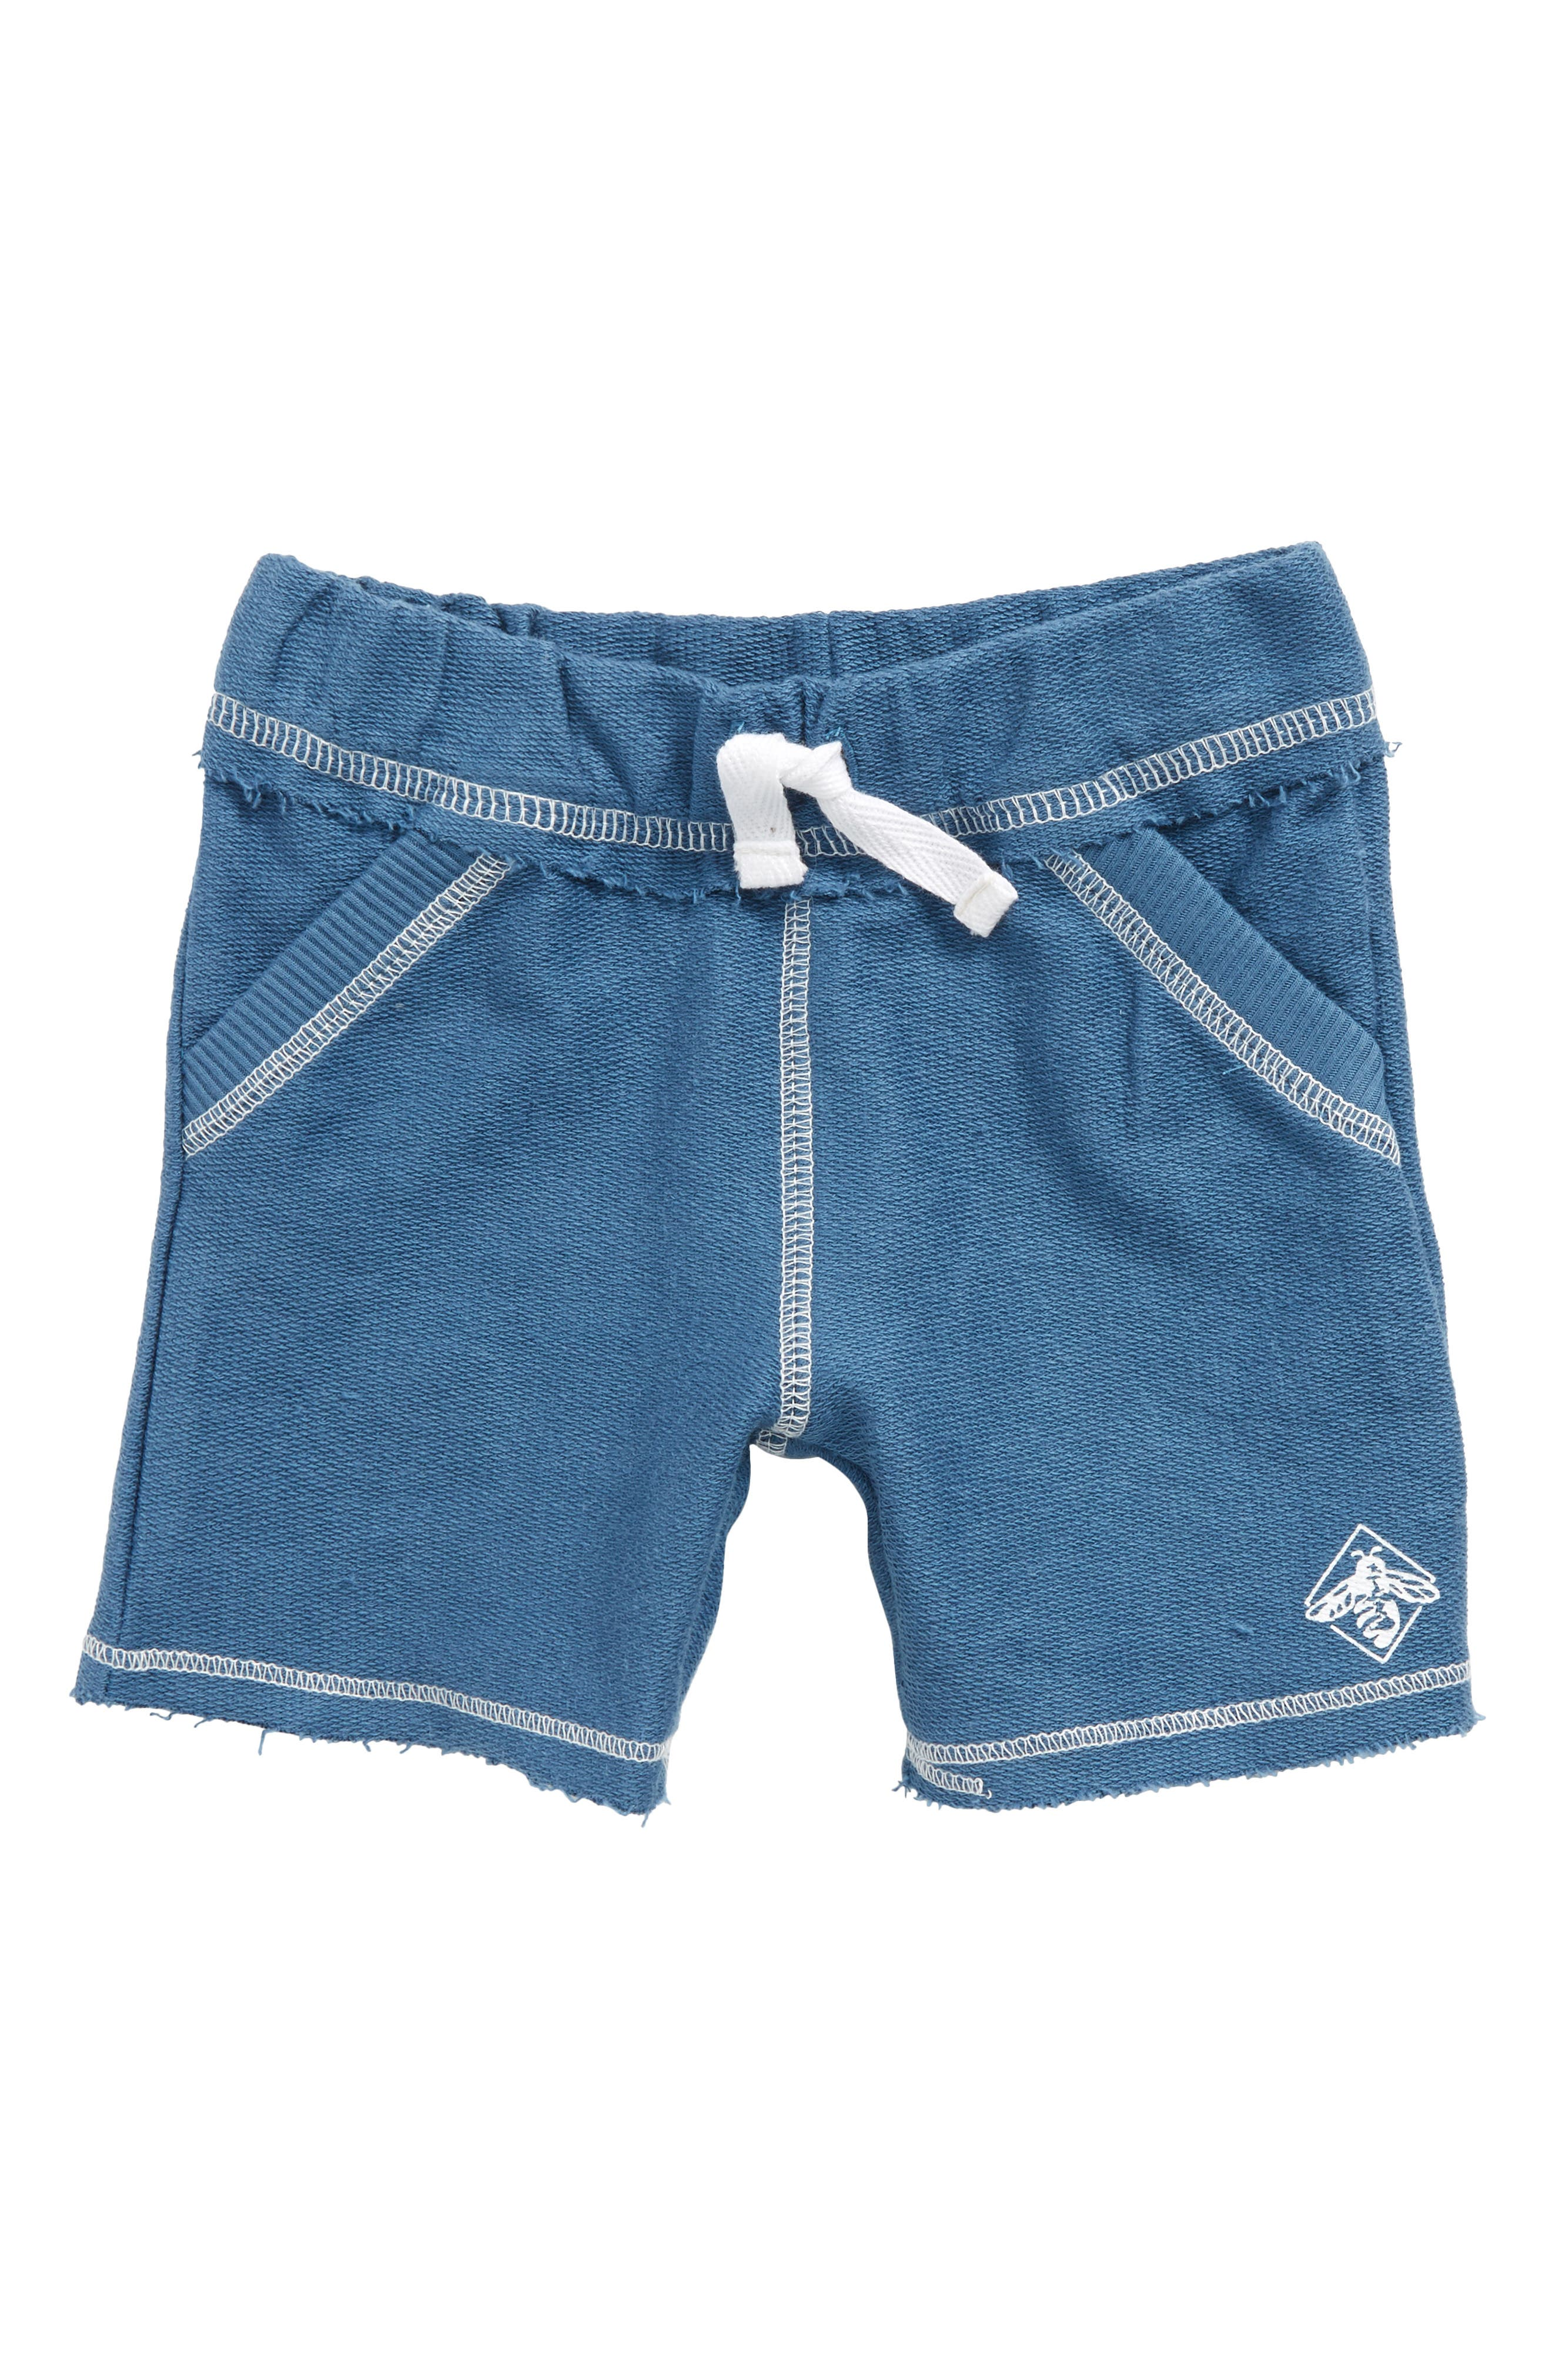 Organic Cotton French Terry Shorts,                         Main,                         color, Blue Star